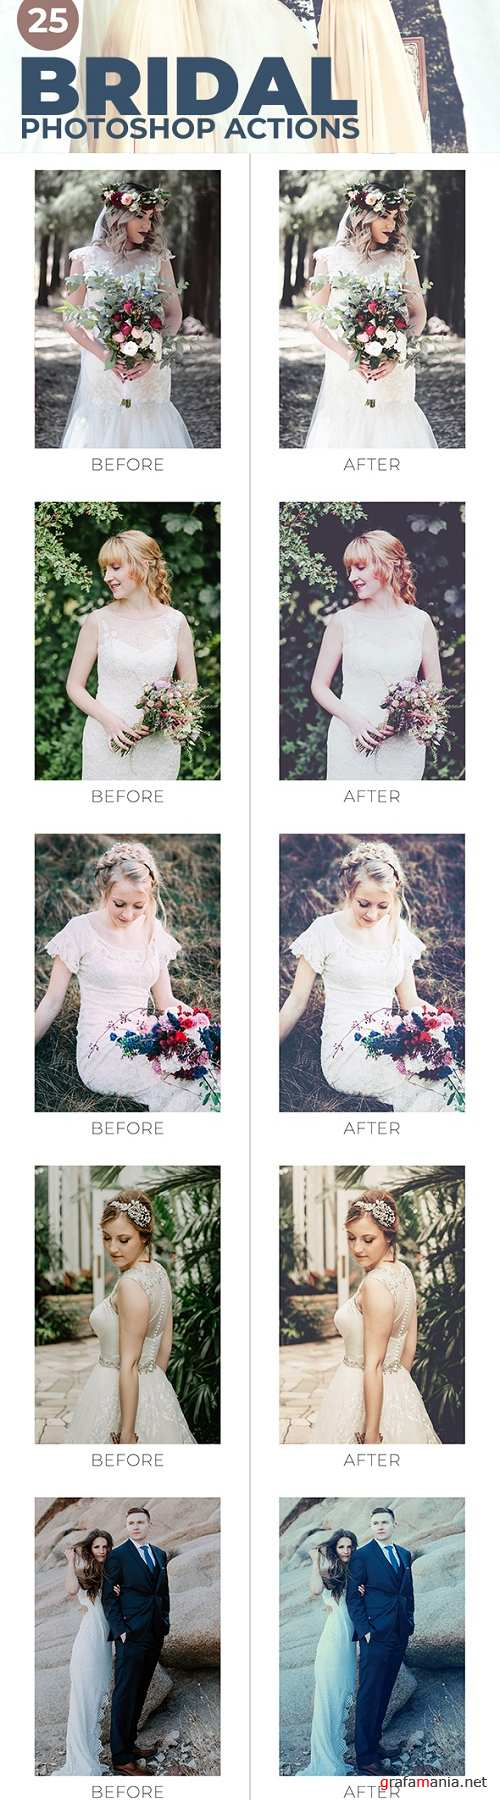 25 Bridal Photoshop Actions 22082649